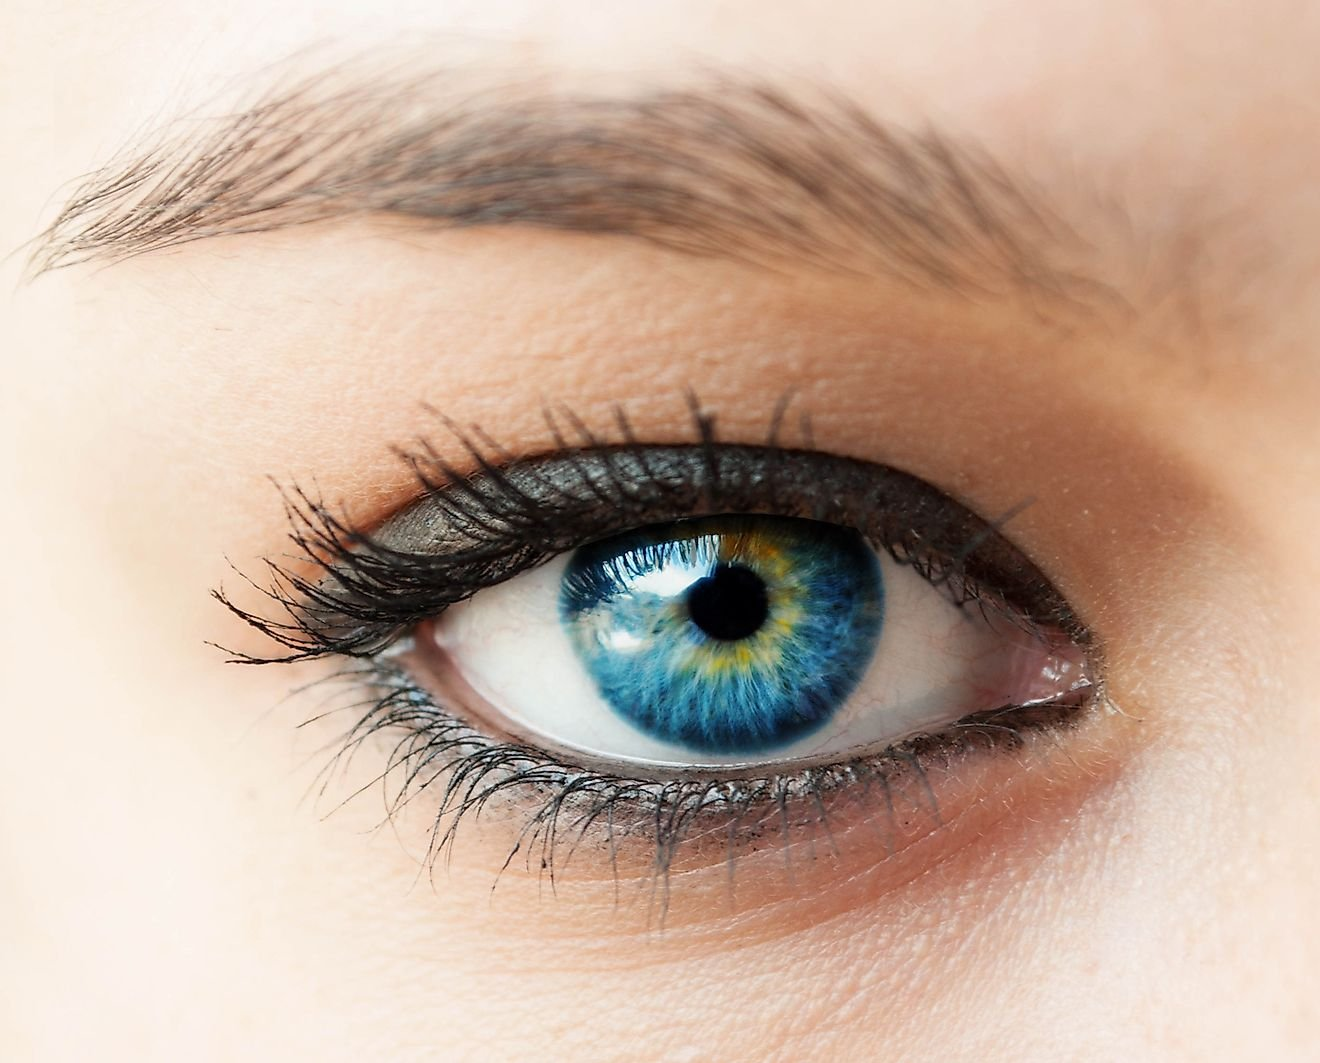 Super Fascinating Facts About The Human Eye You Probably Don't Know